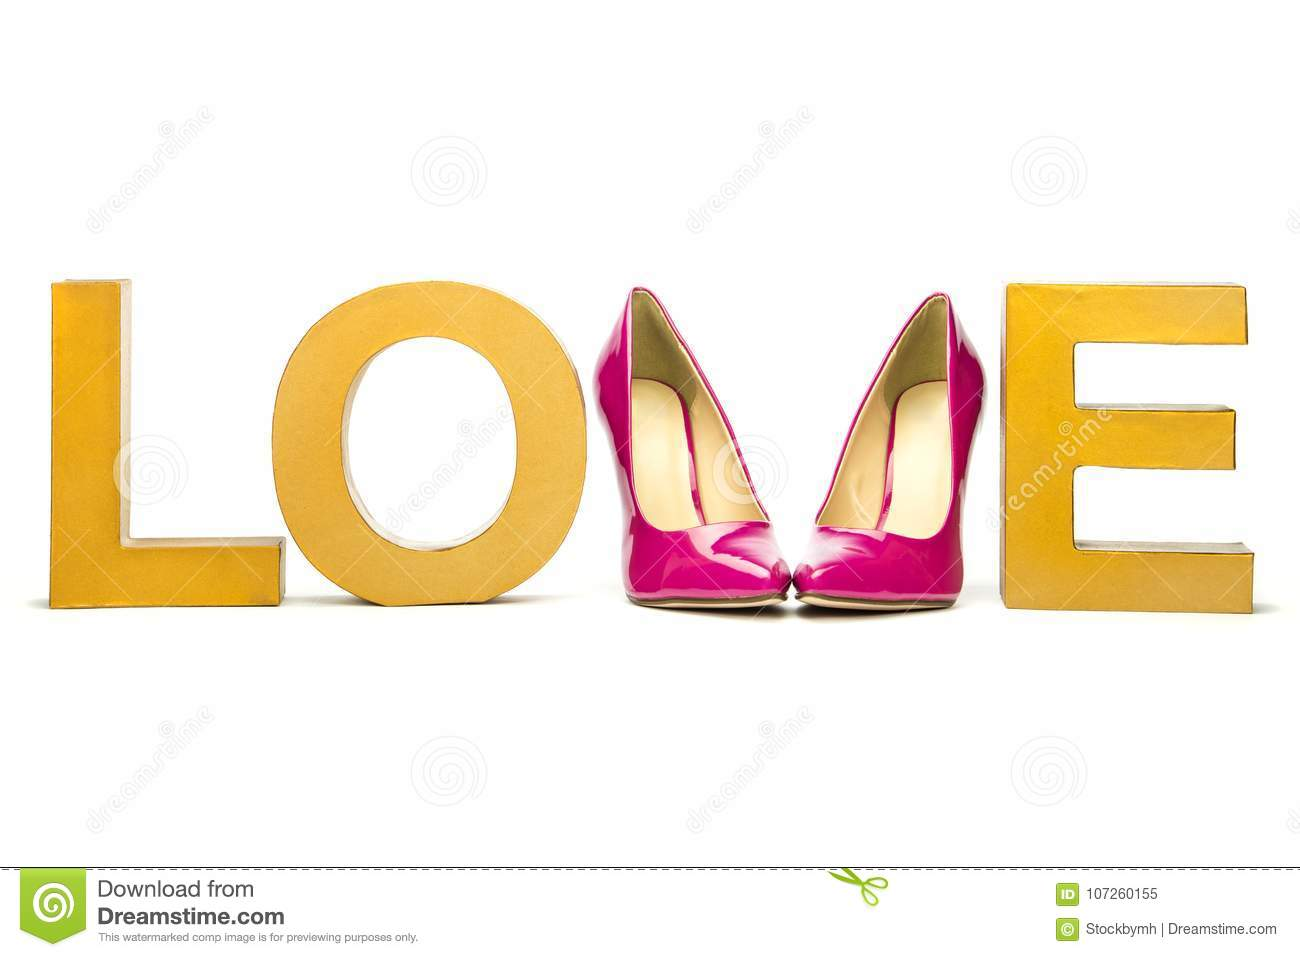 To acquire The fashionista word pictures trends